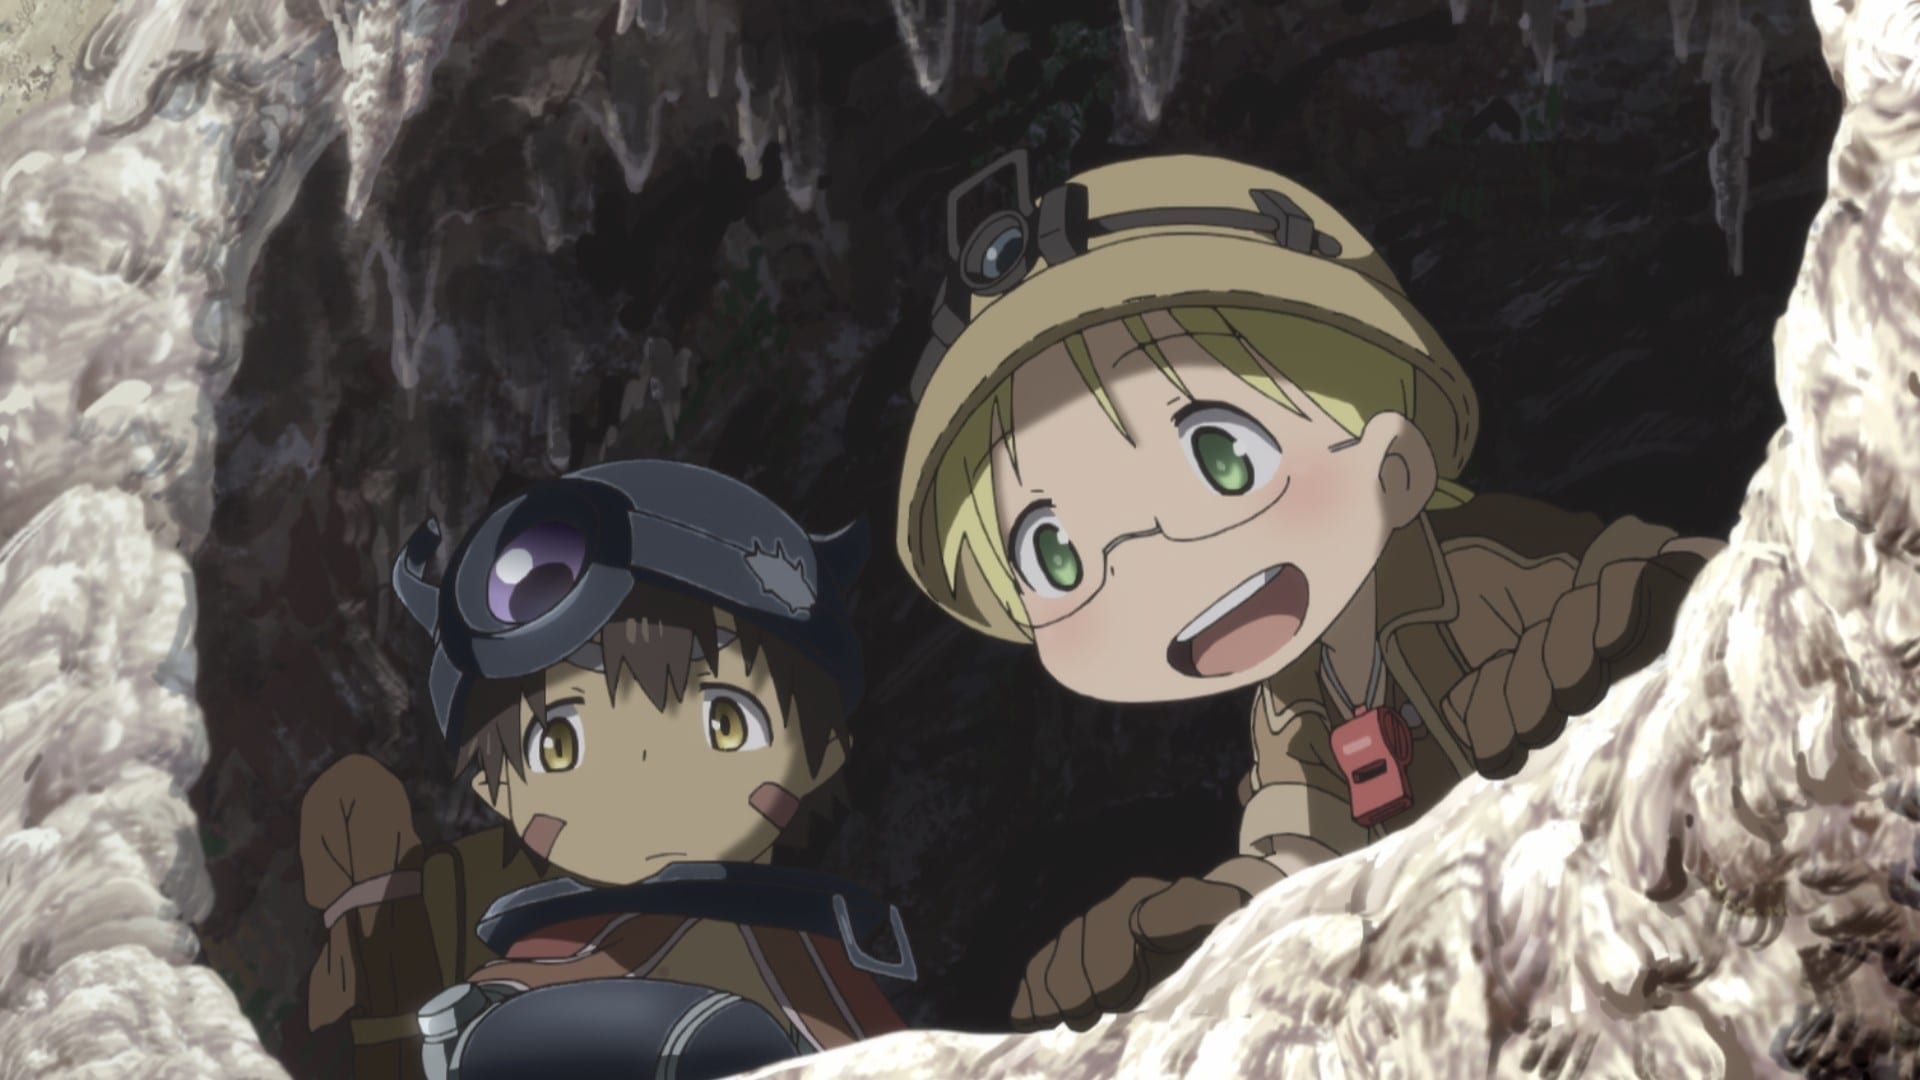 Made in Abyss scn1